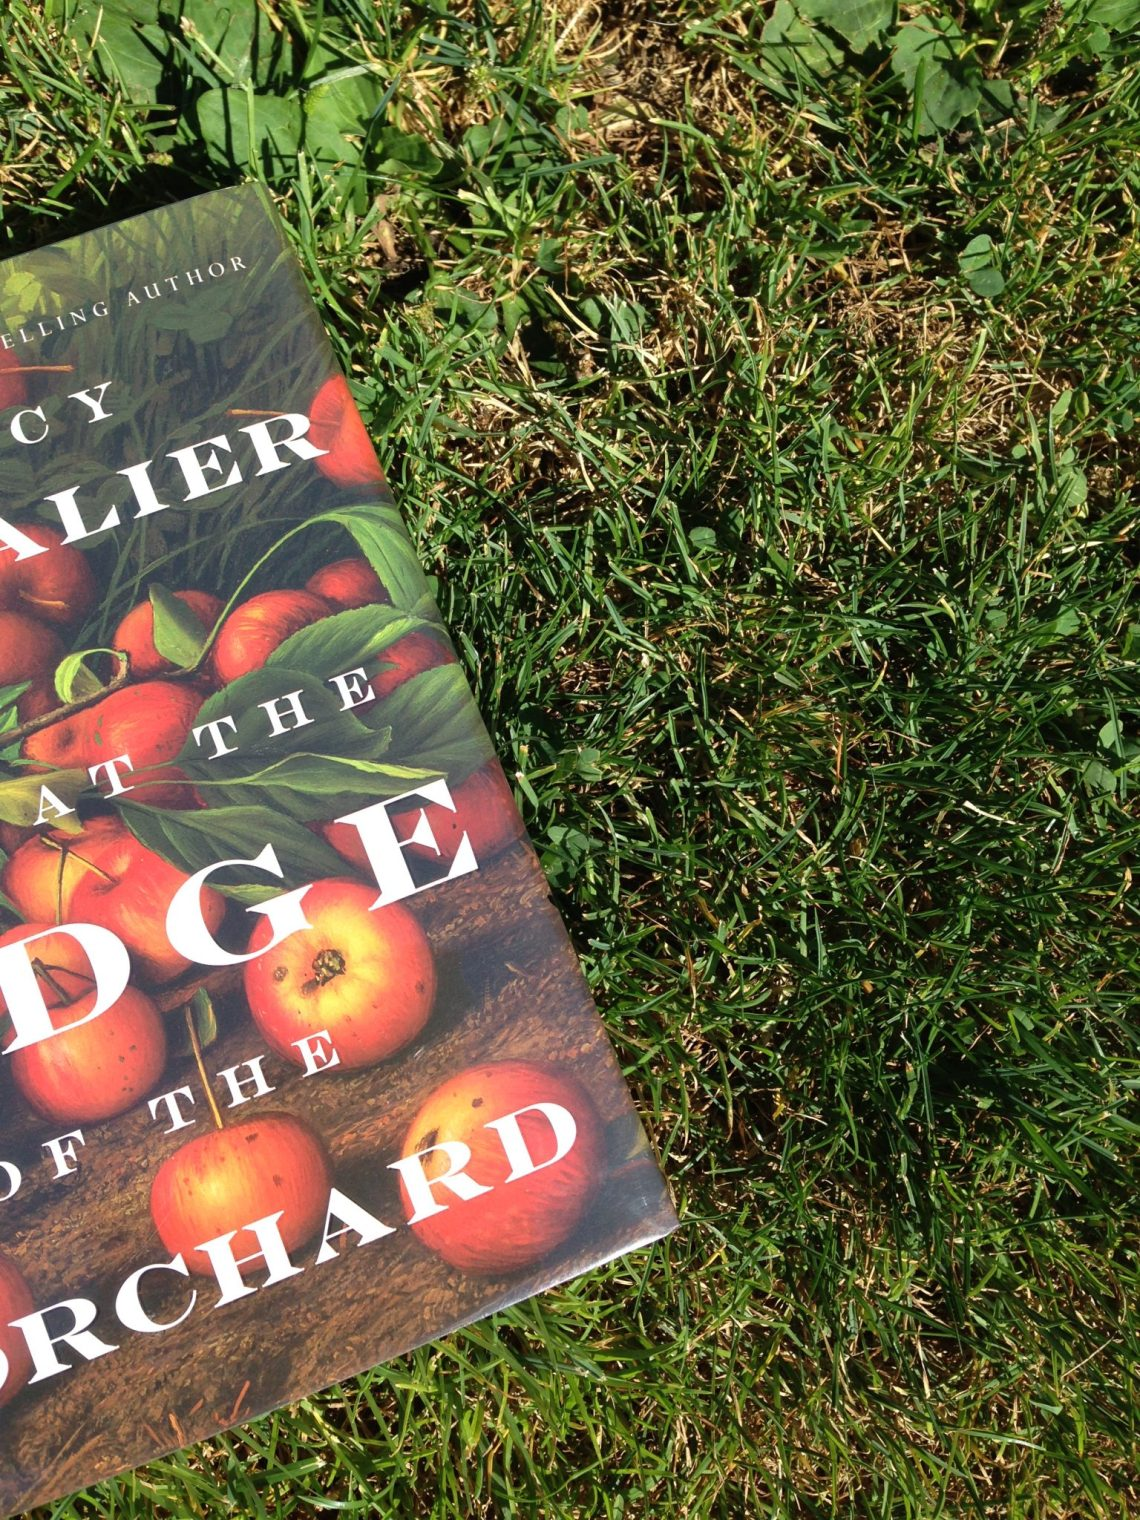 Tracy Chevalier novel, At the Edge of the Orchard